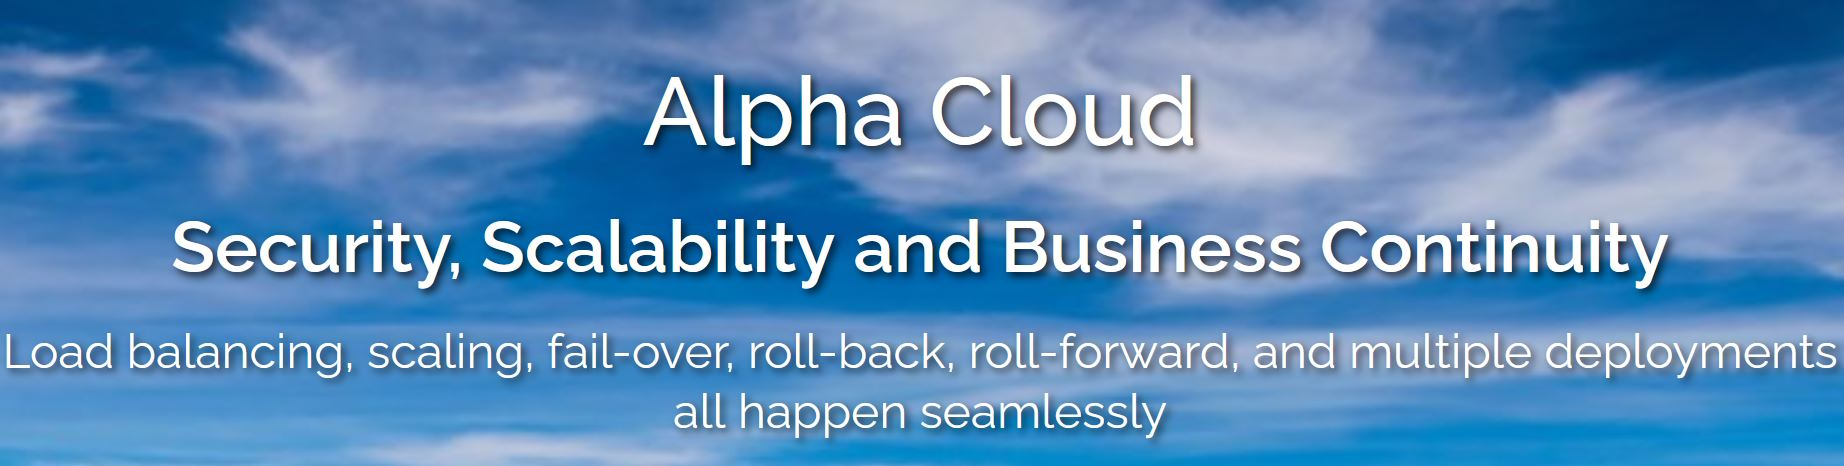 Alpha Cloud - Built with Security in Mind